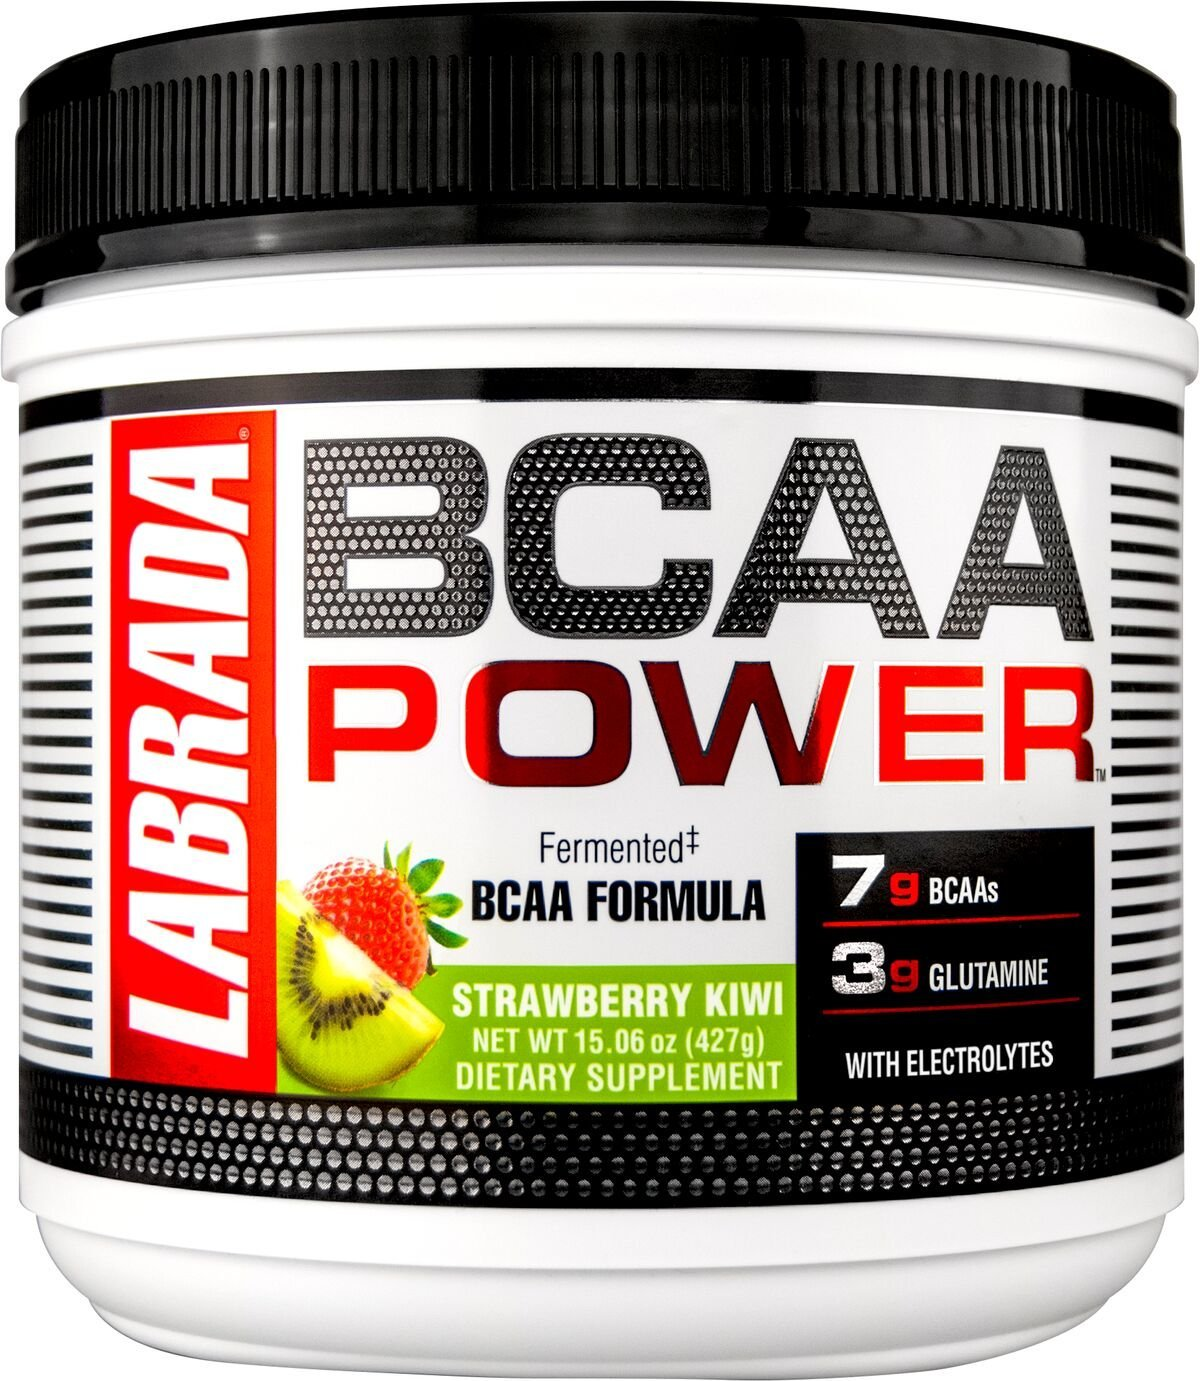 BCAA Power Powder by Labrada Nutrition